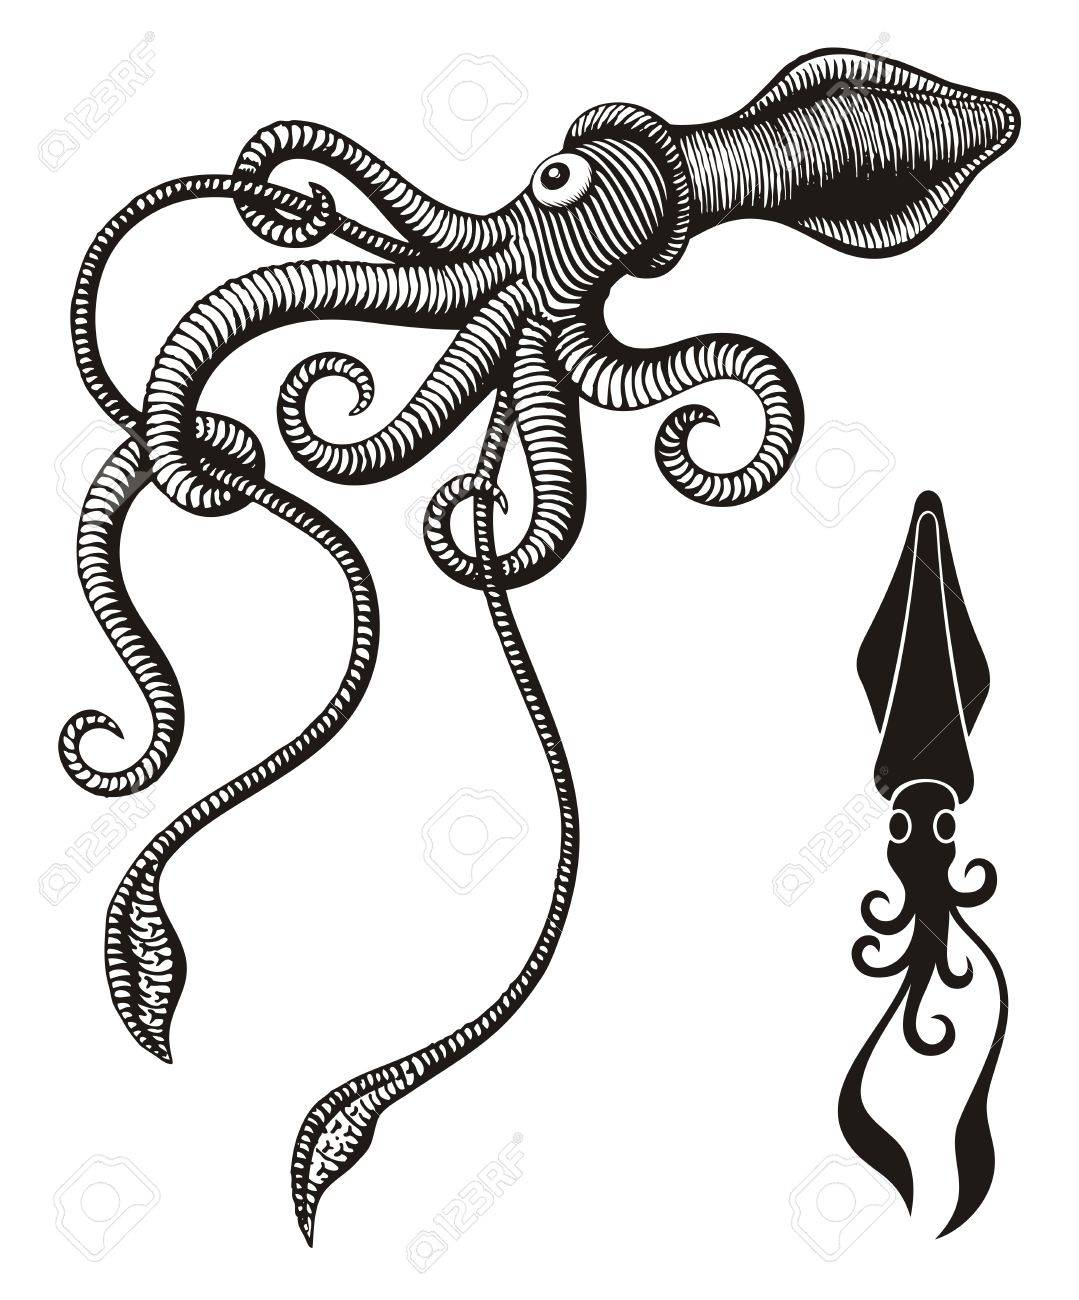 Black and white monster squid woodcut. - 16814202